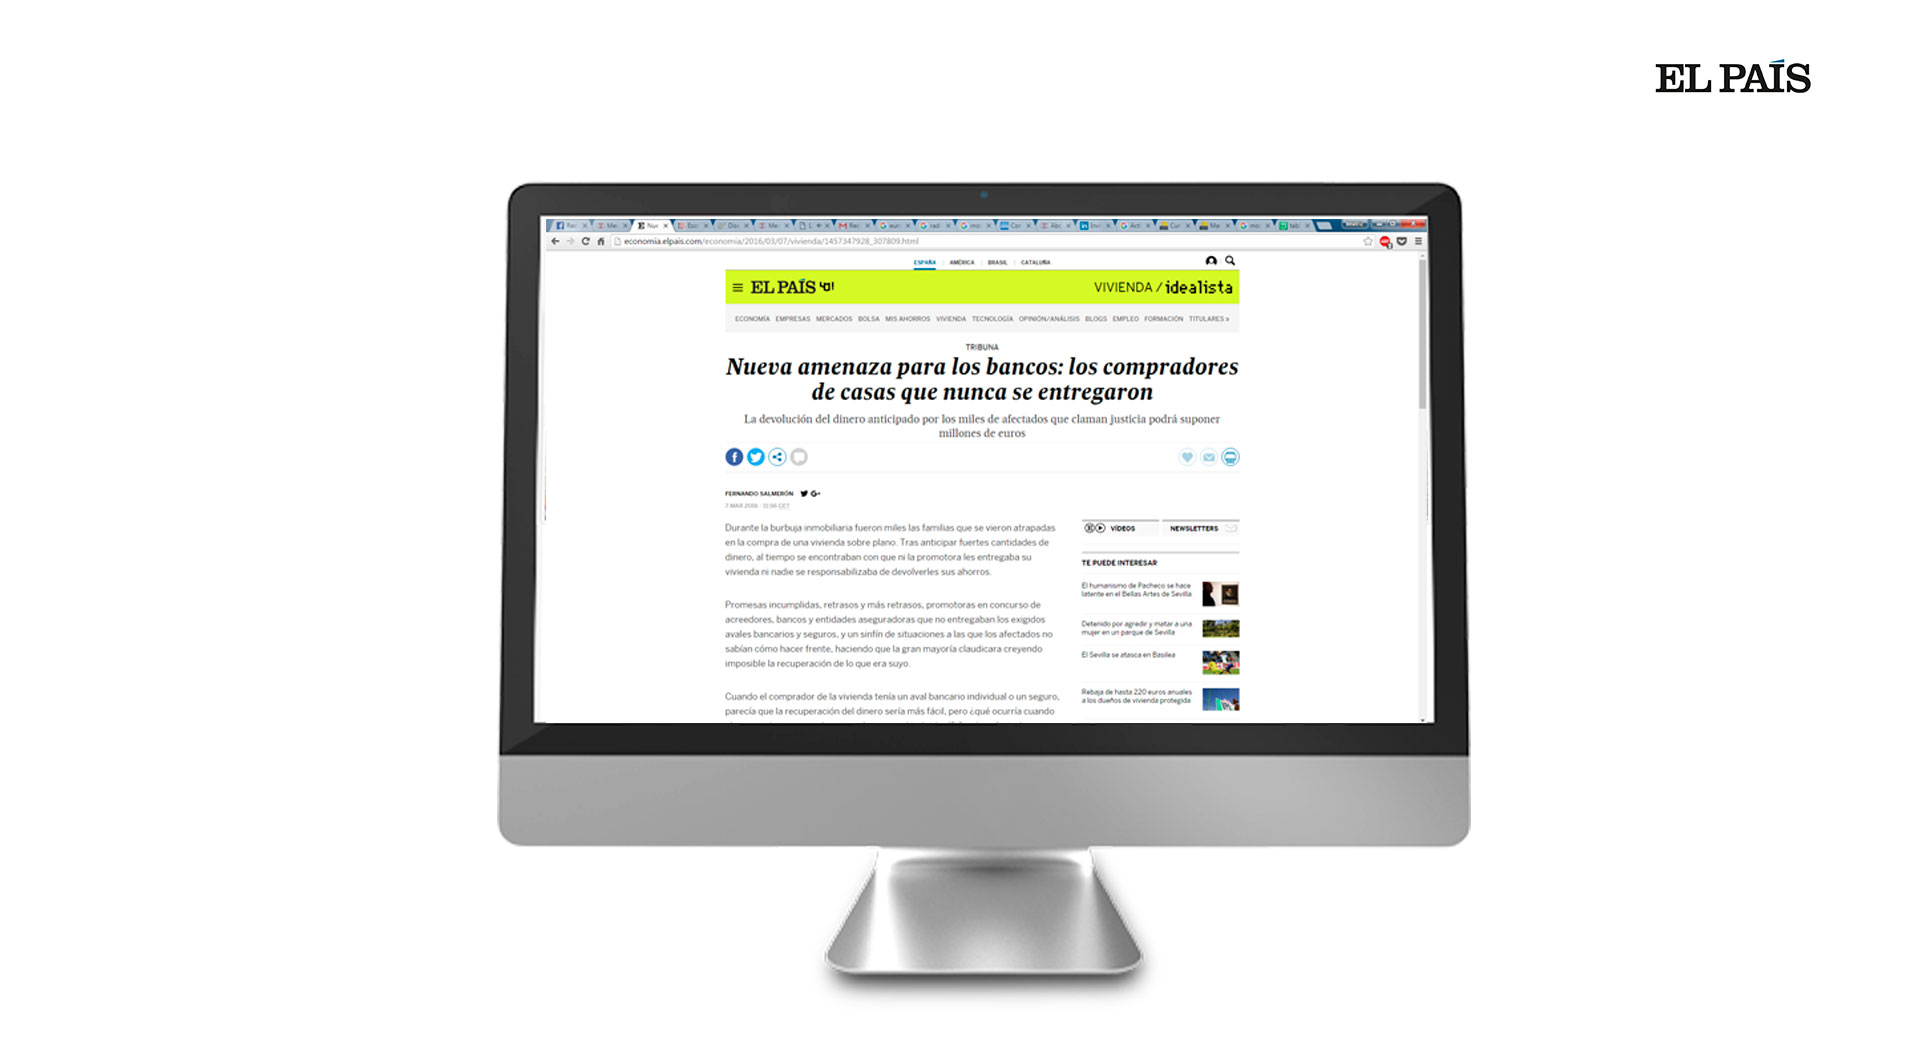 El País, a renowned newspaper nationwide, publishes an opinion piece of Fernando Salmerón on its digital version.